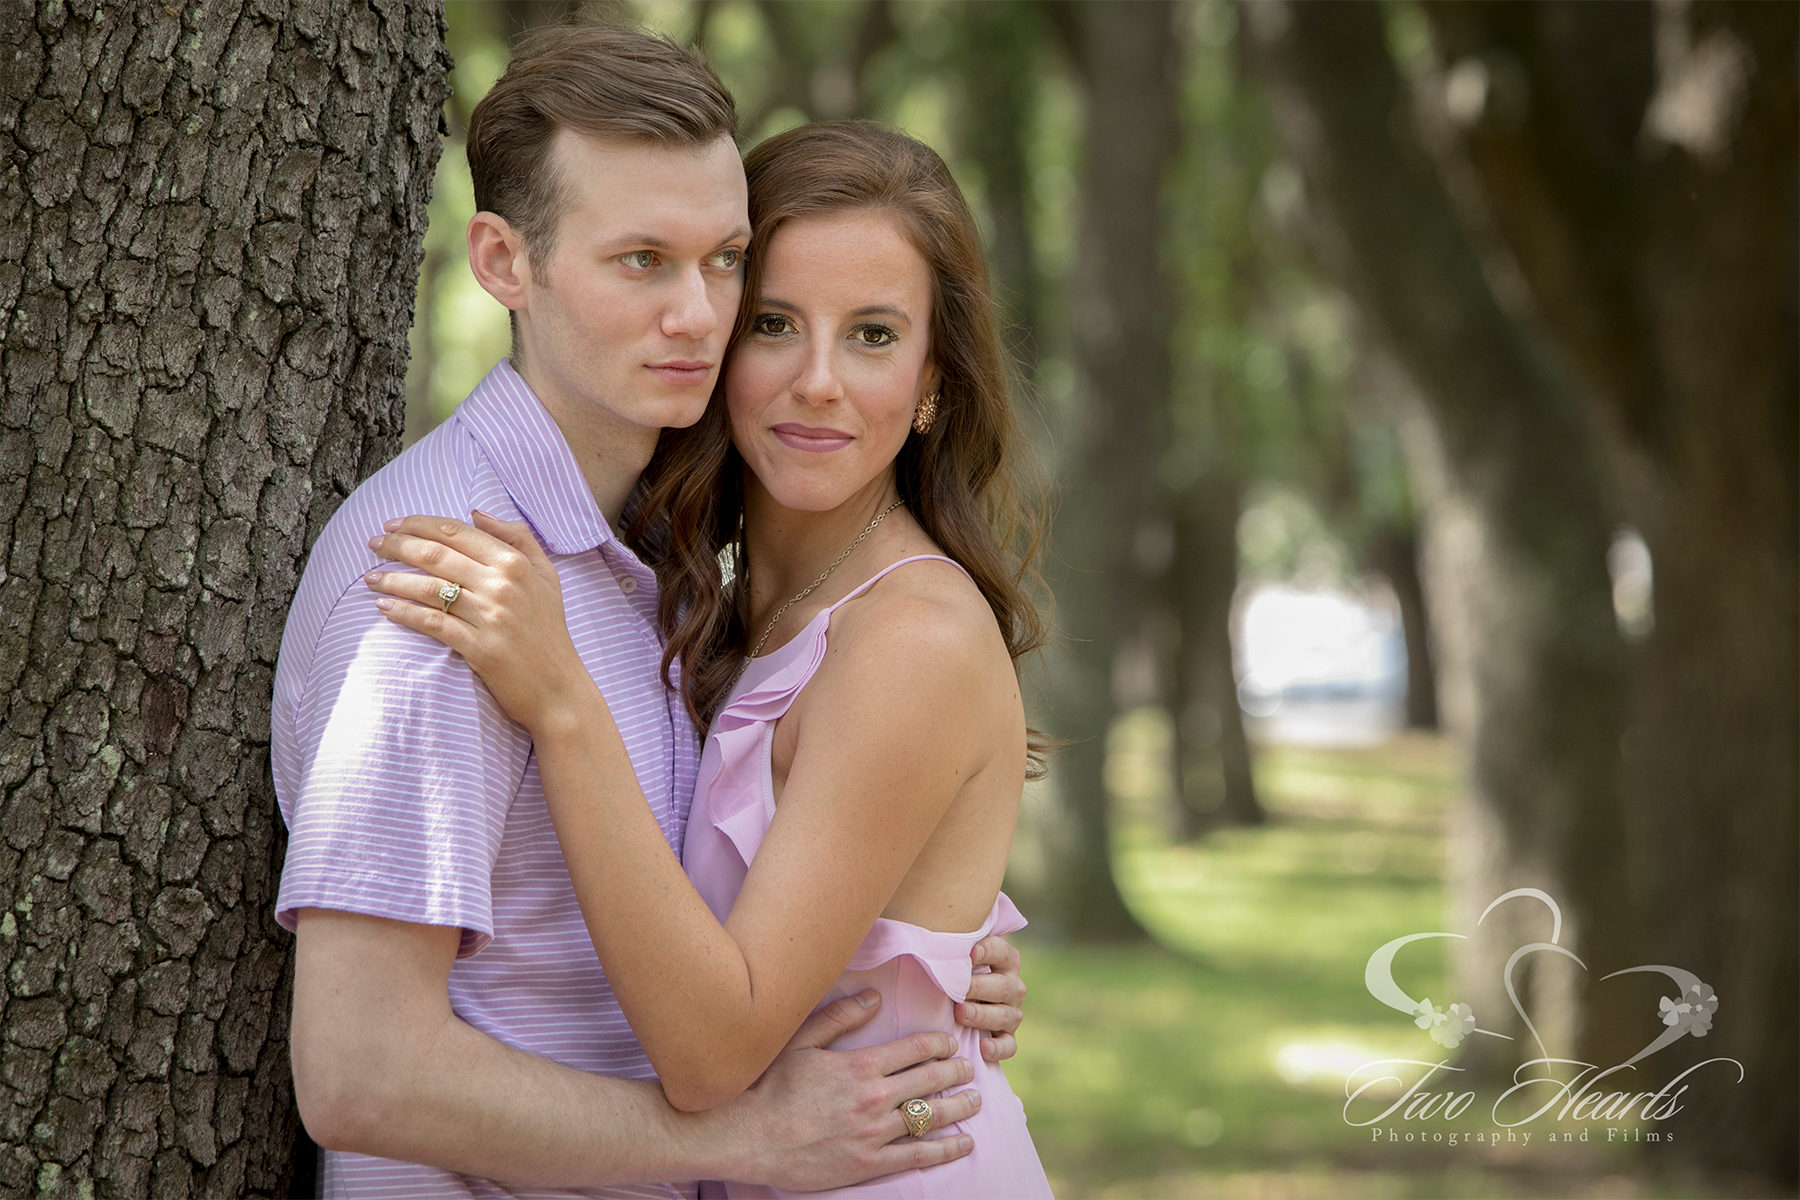 How To Look And Feel Your Best For Your Engagement Photography Session - Two Hearts Studios